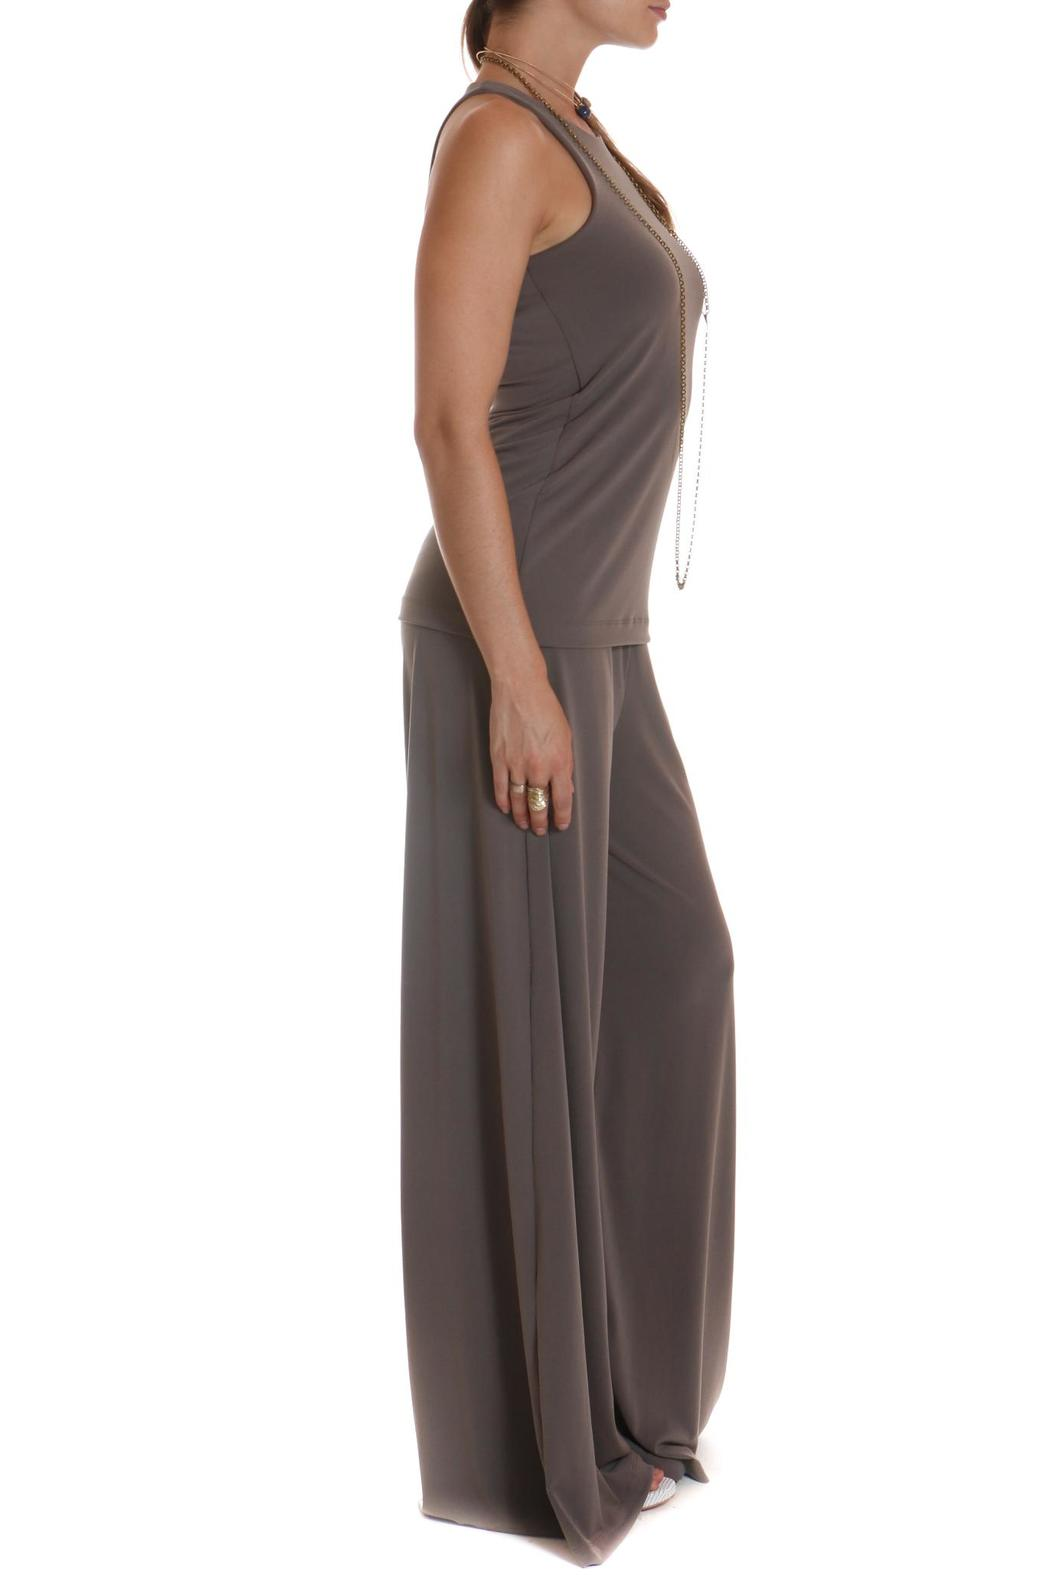 Anatomie Flowy Dress Pants from New York by Love,Leeann — Shoptiques